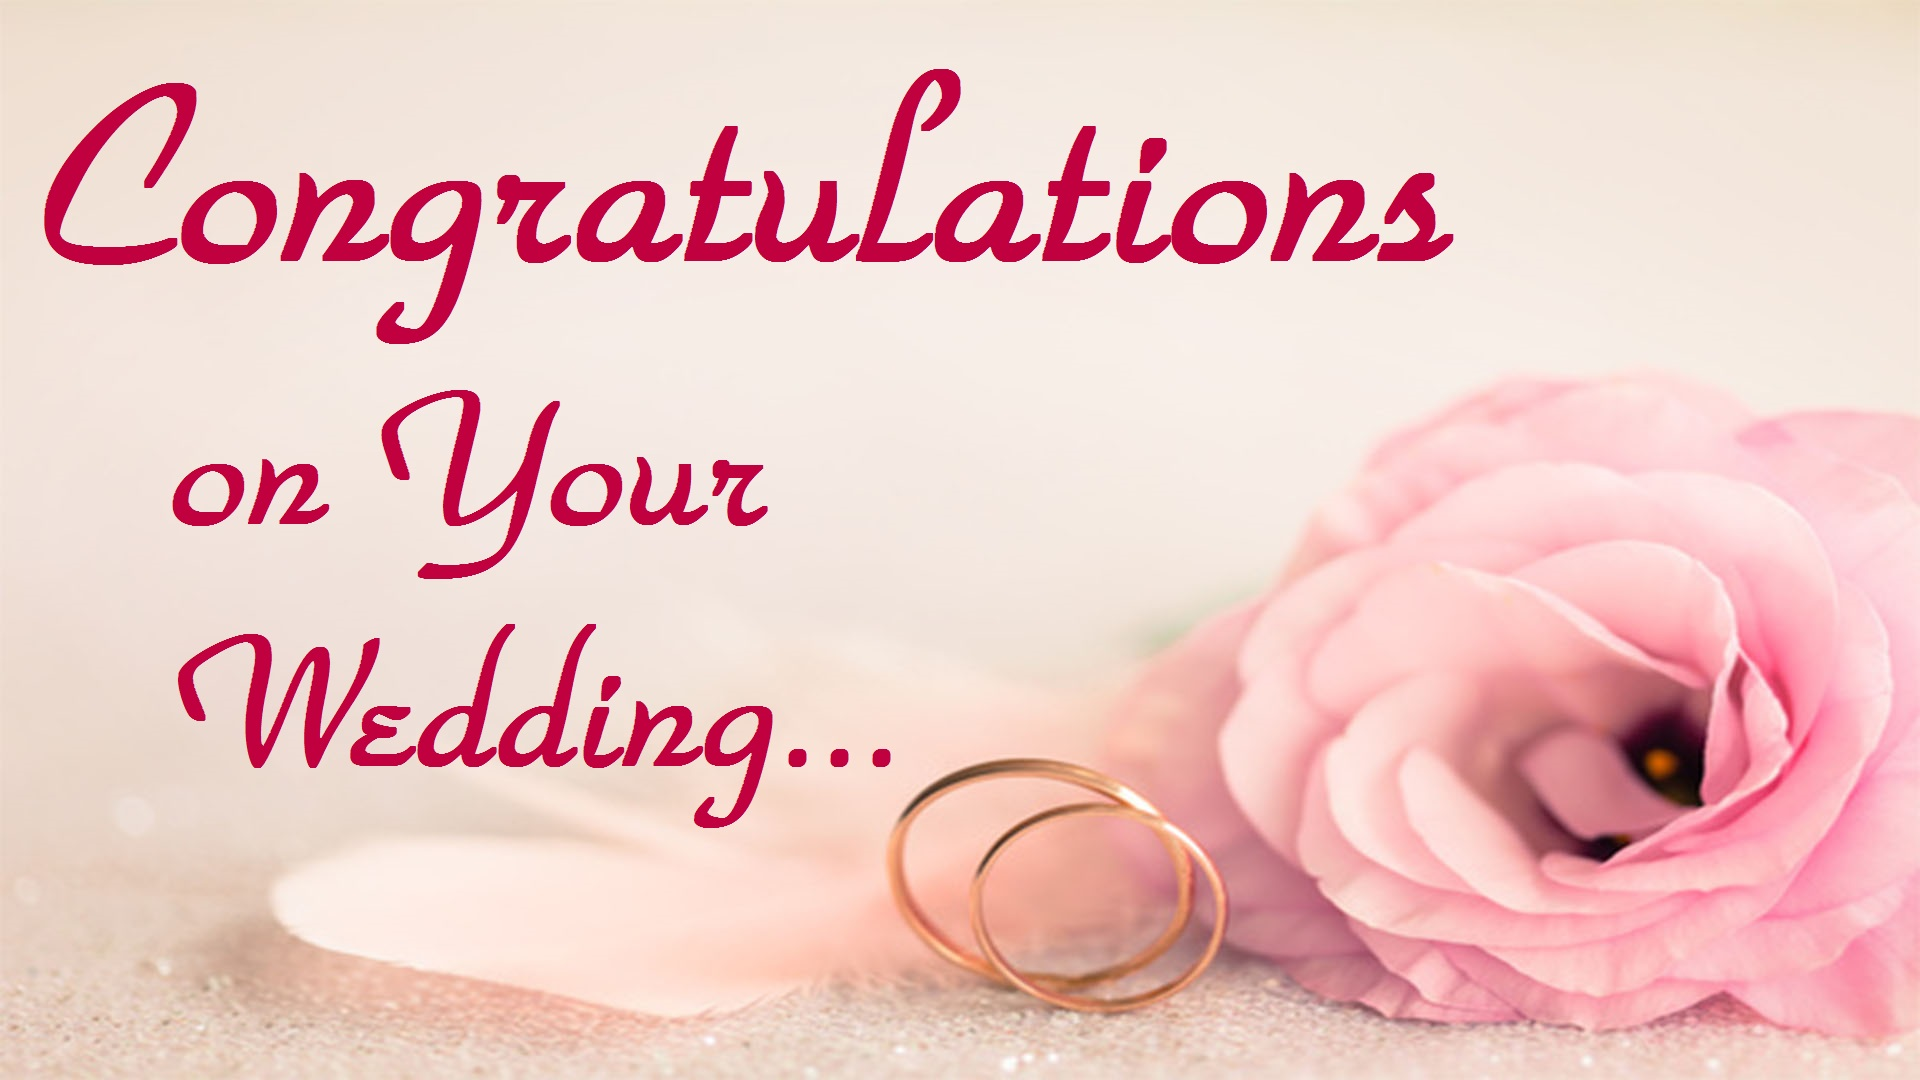 wedding congratulations images hd